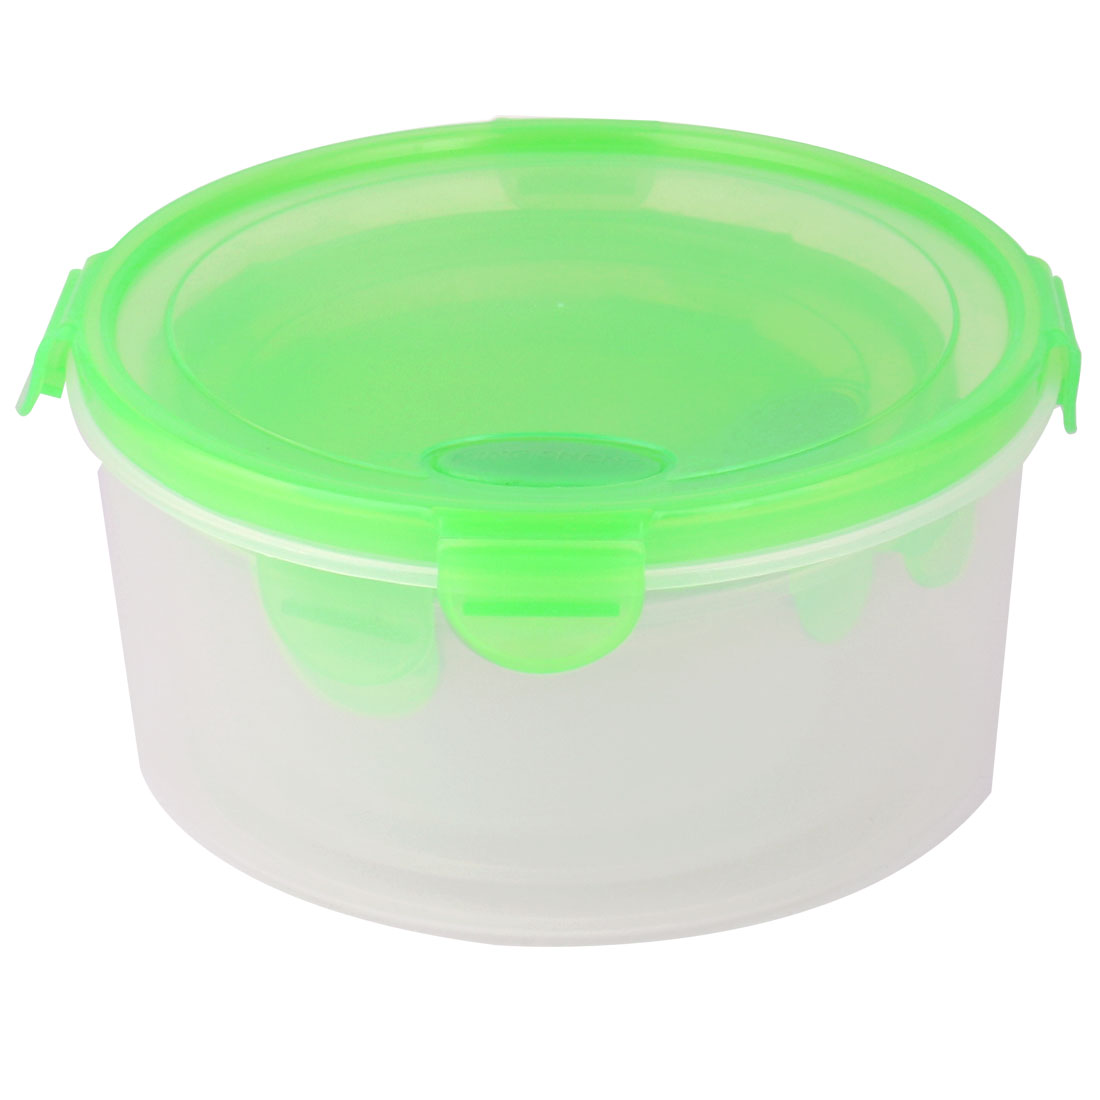 Family PP Cylindrical Airtight Food Snack Storage Container 1300ML 3 in 1 Green